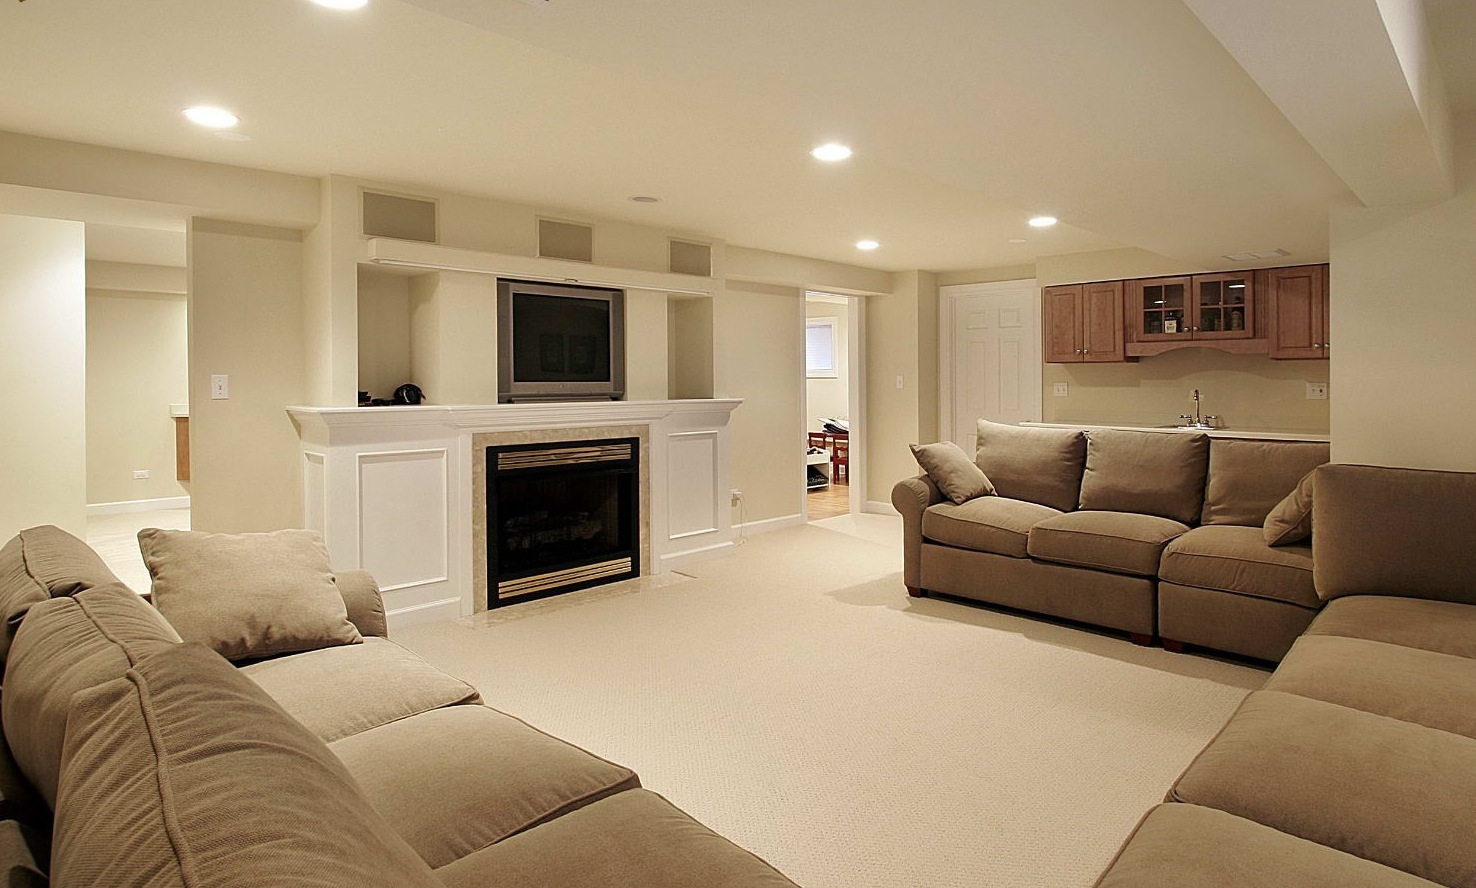 Basement Living Room Designs Stunning 30 Cool Ways To Decorate Your Basement  Basements Decorating And Design Ideas